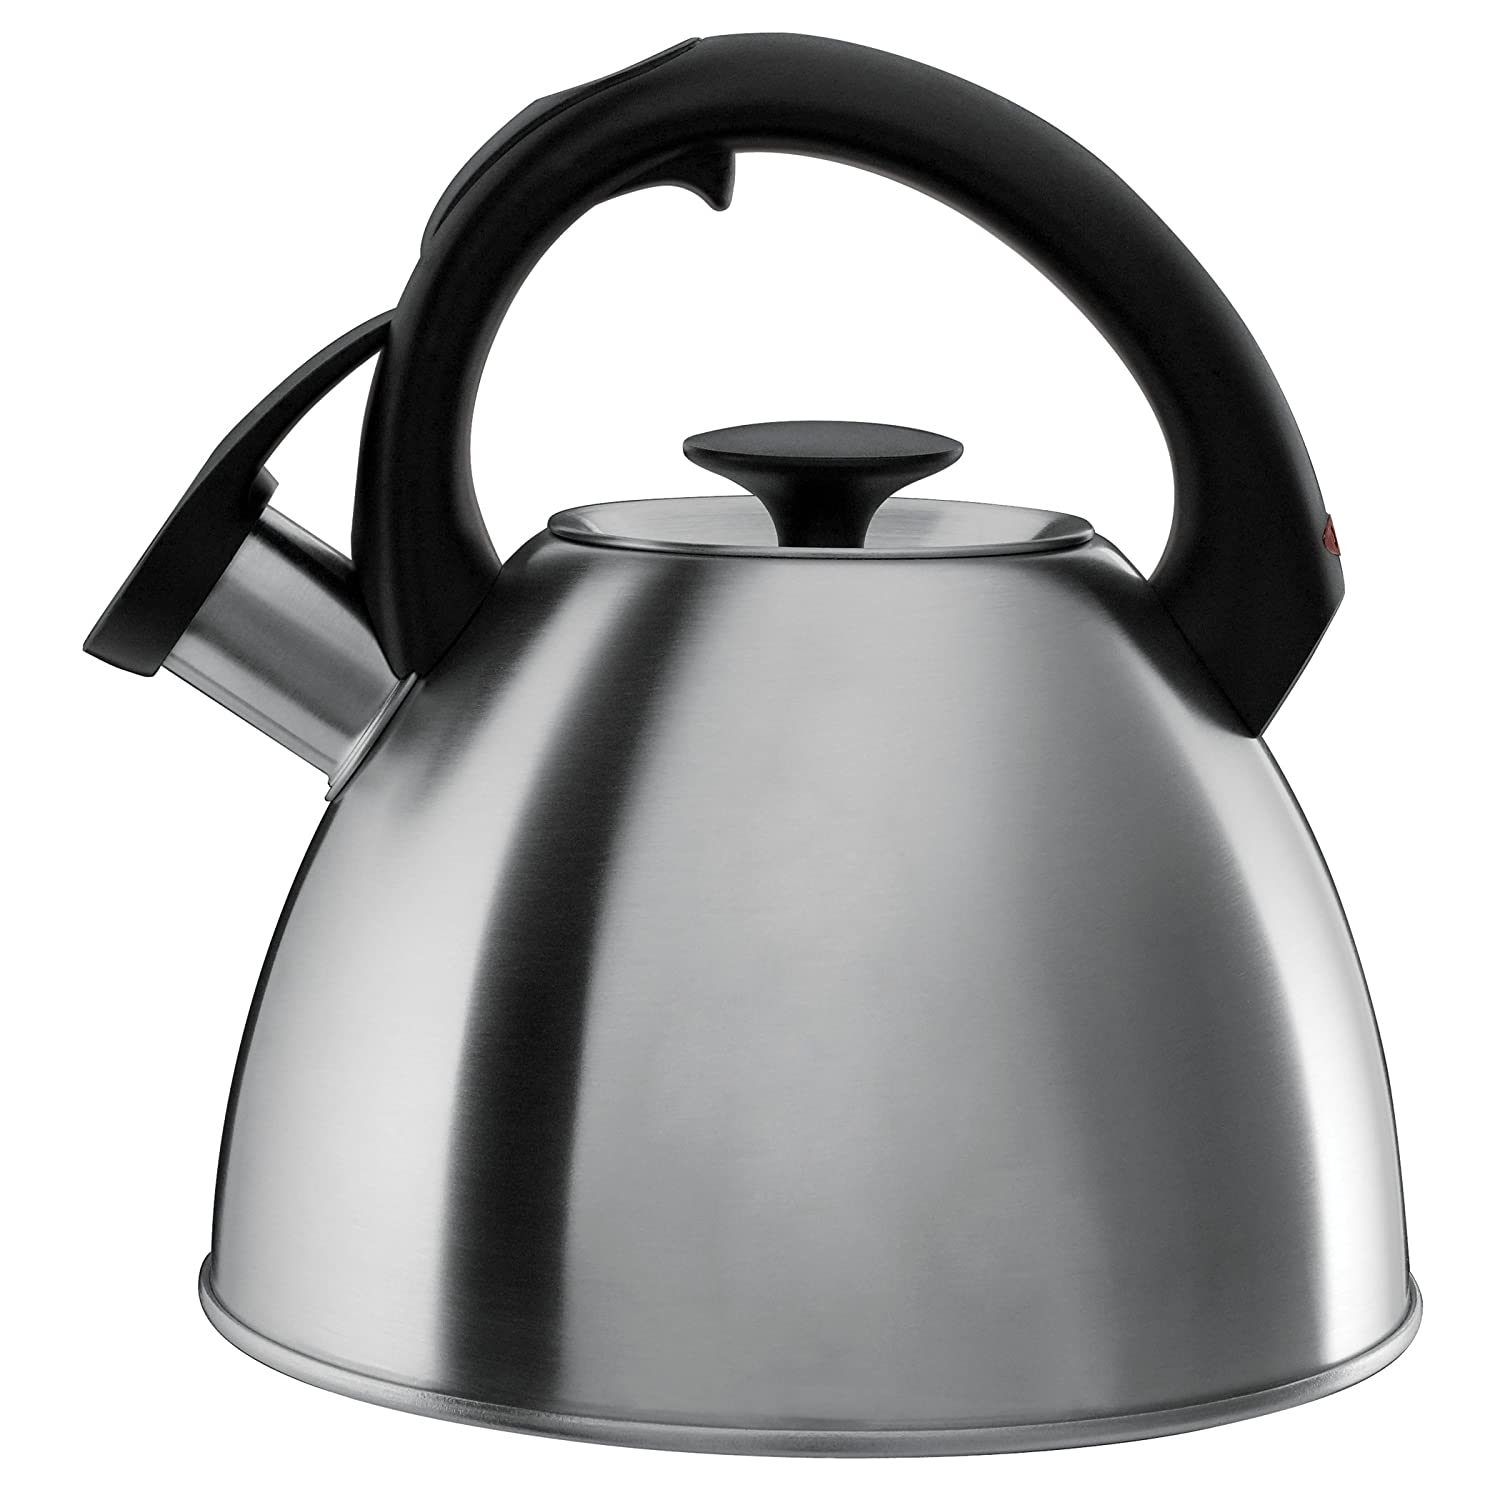 OXO Good Grips Click Click Tea Kettle, Brushed Stainless OXO Cook' s Tools 1072130